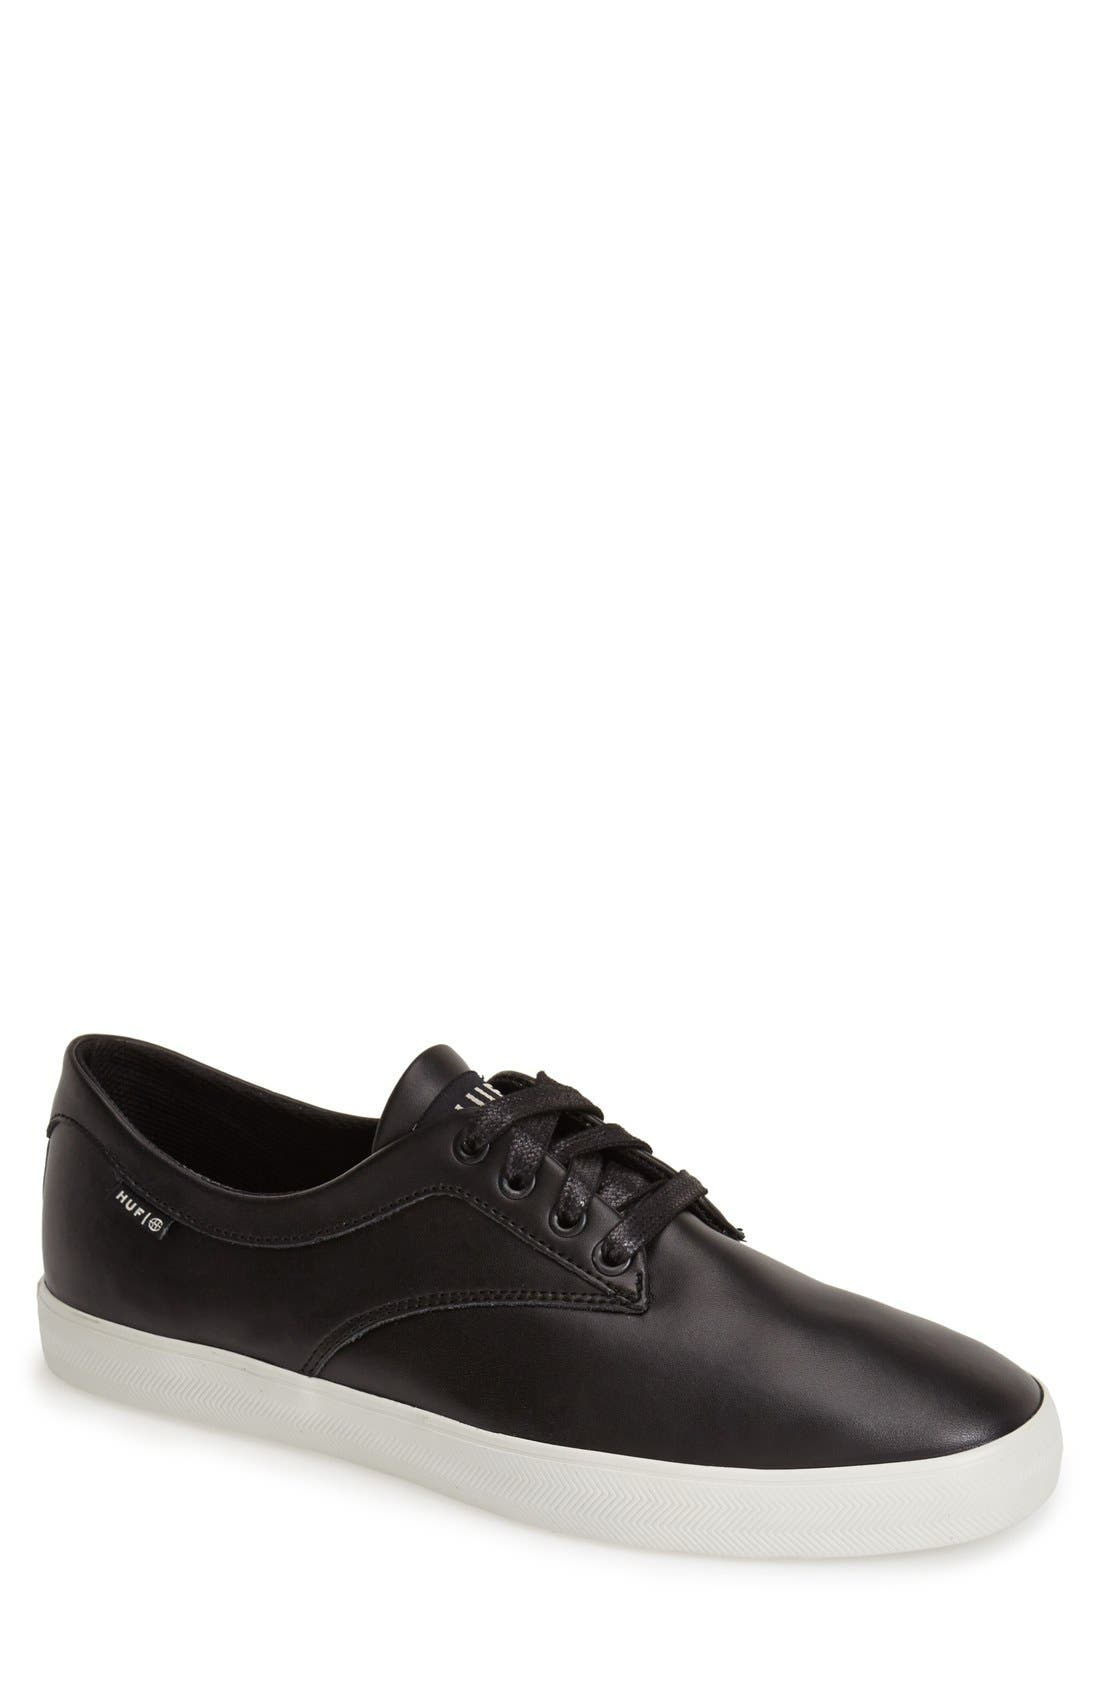 HUF 'Sutter' Leather Sneaker, Main, color, 001